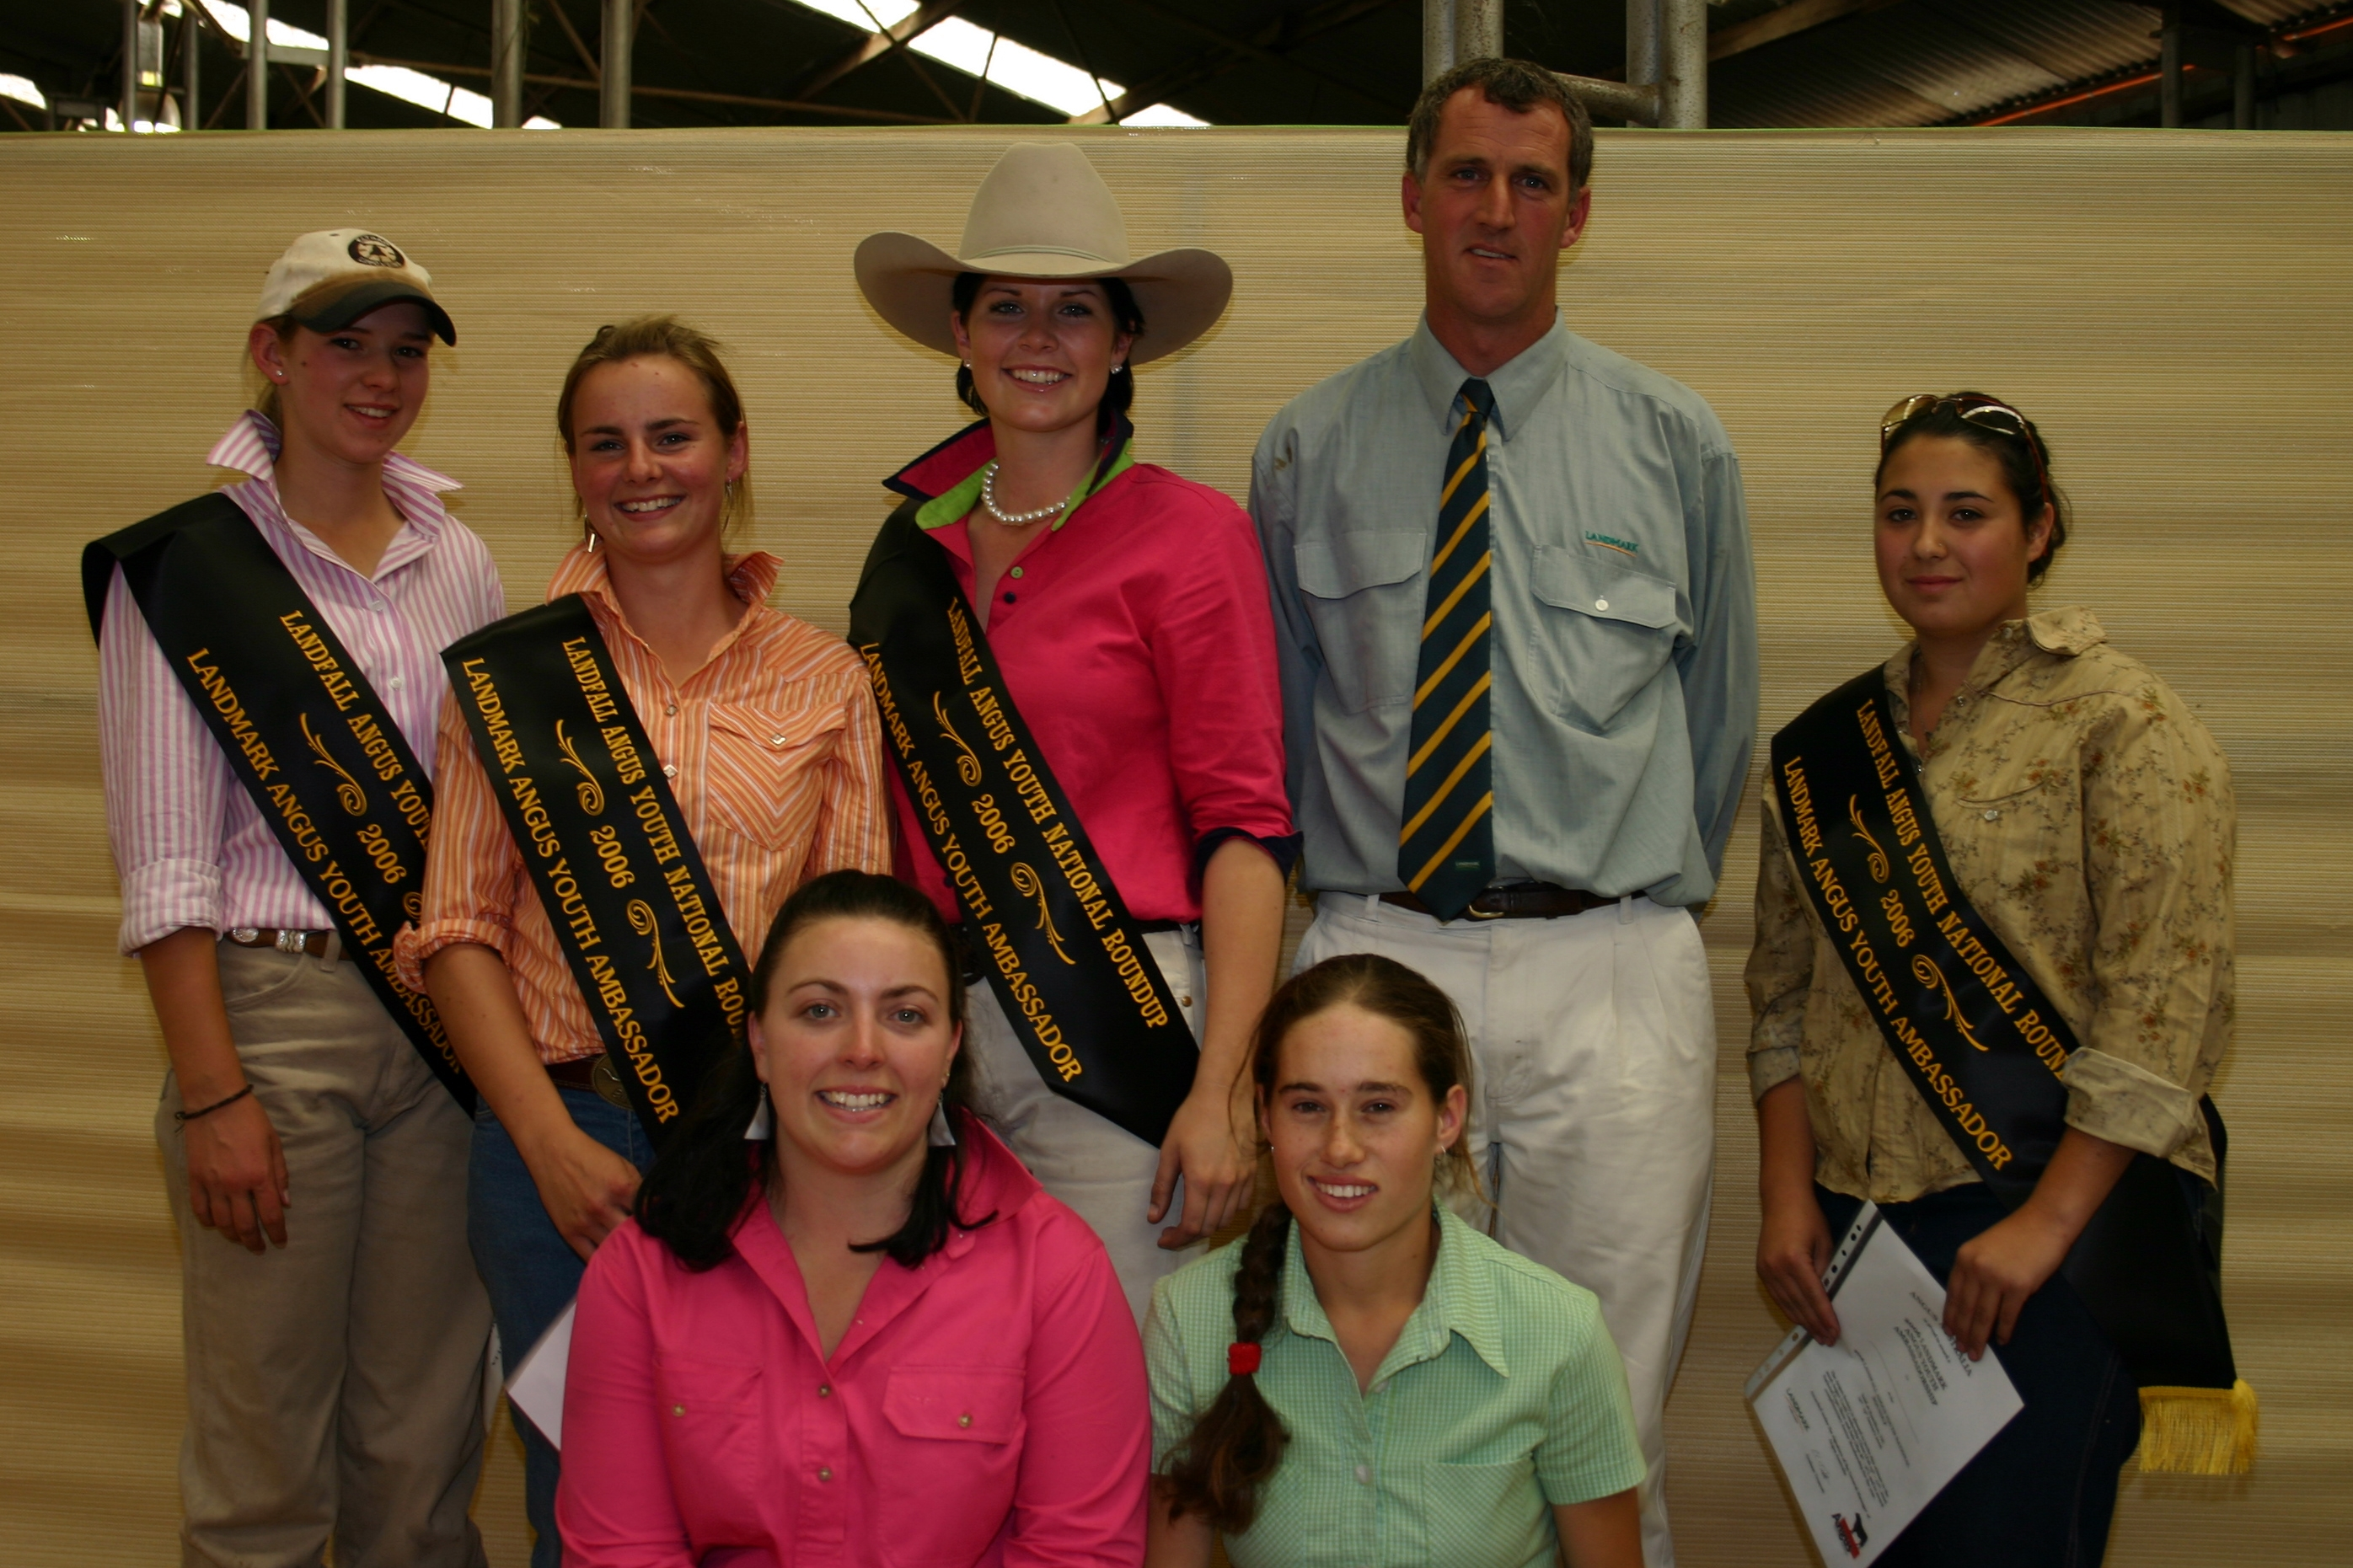 The 2006 Landmark Angus Youth Ambassadors pictured at Roundup 2006 in Hamilton Victoria